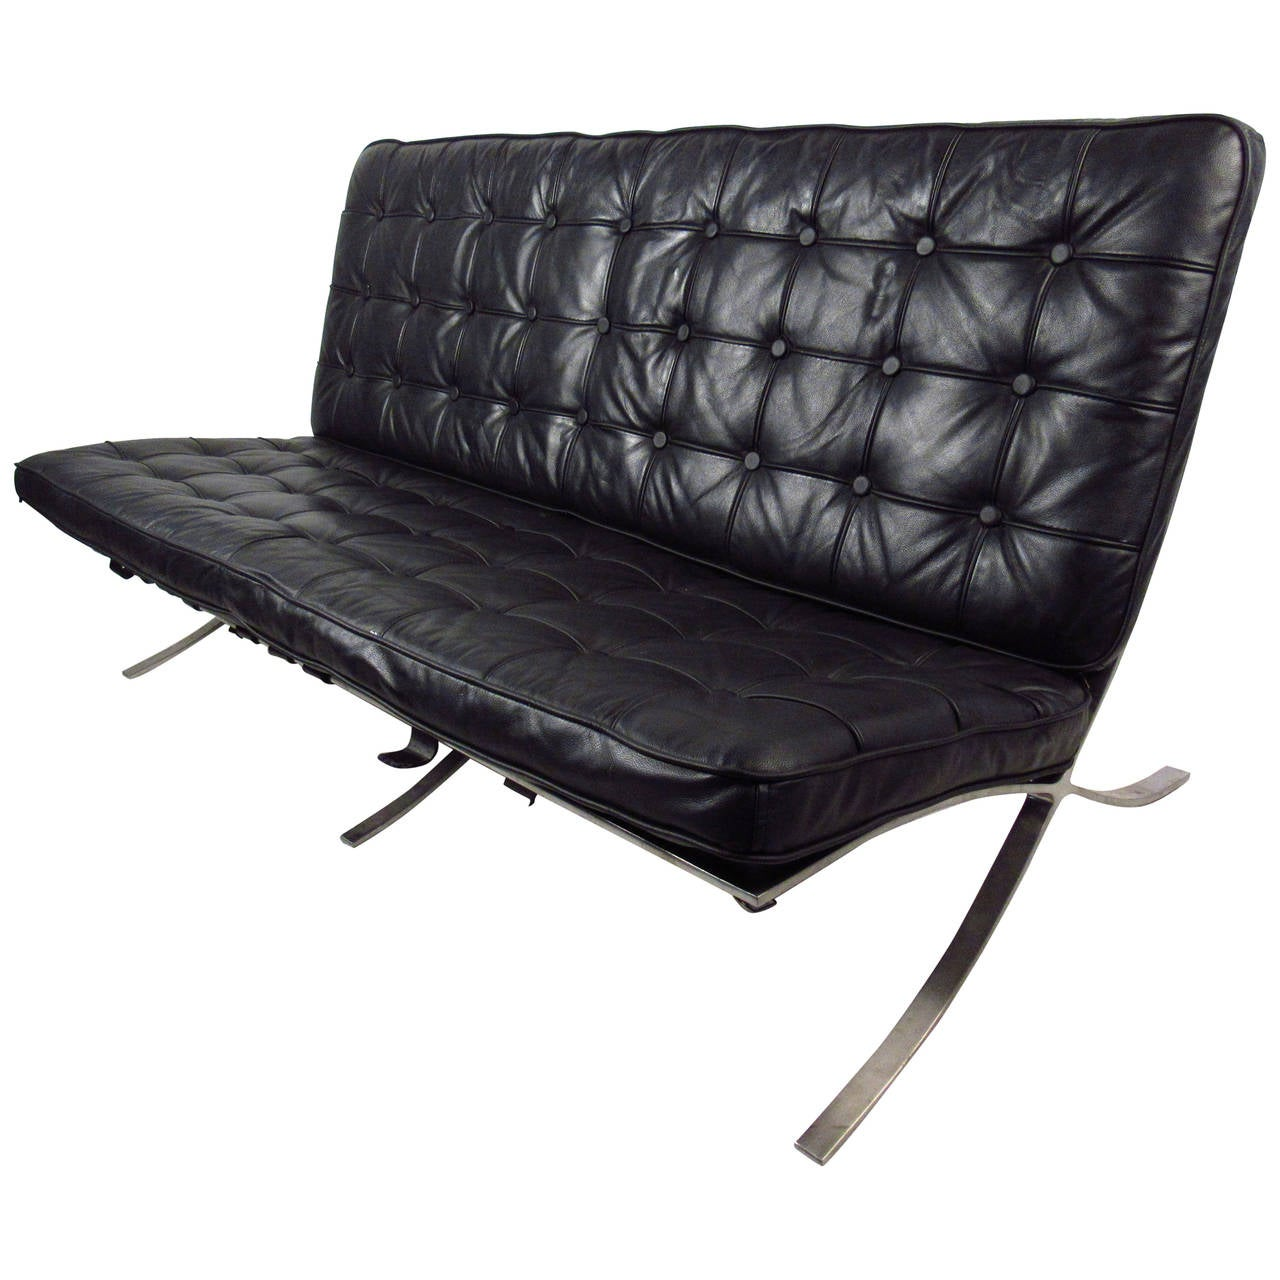 barcelona chair style couch picture frame molding rail mid century sofa ludwig mies van der rohe